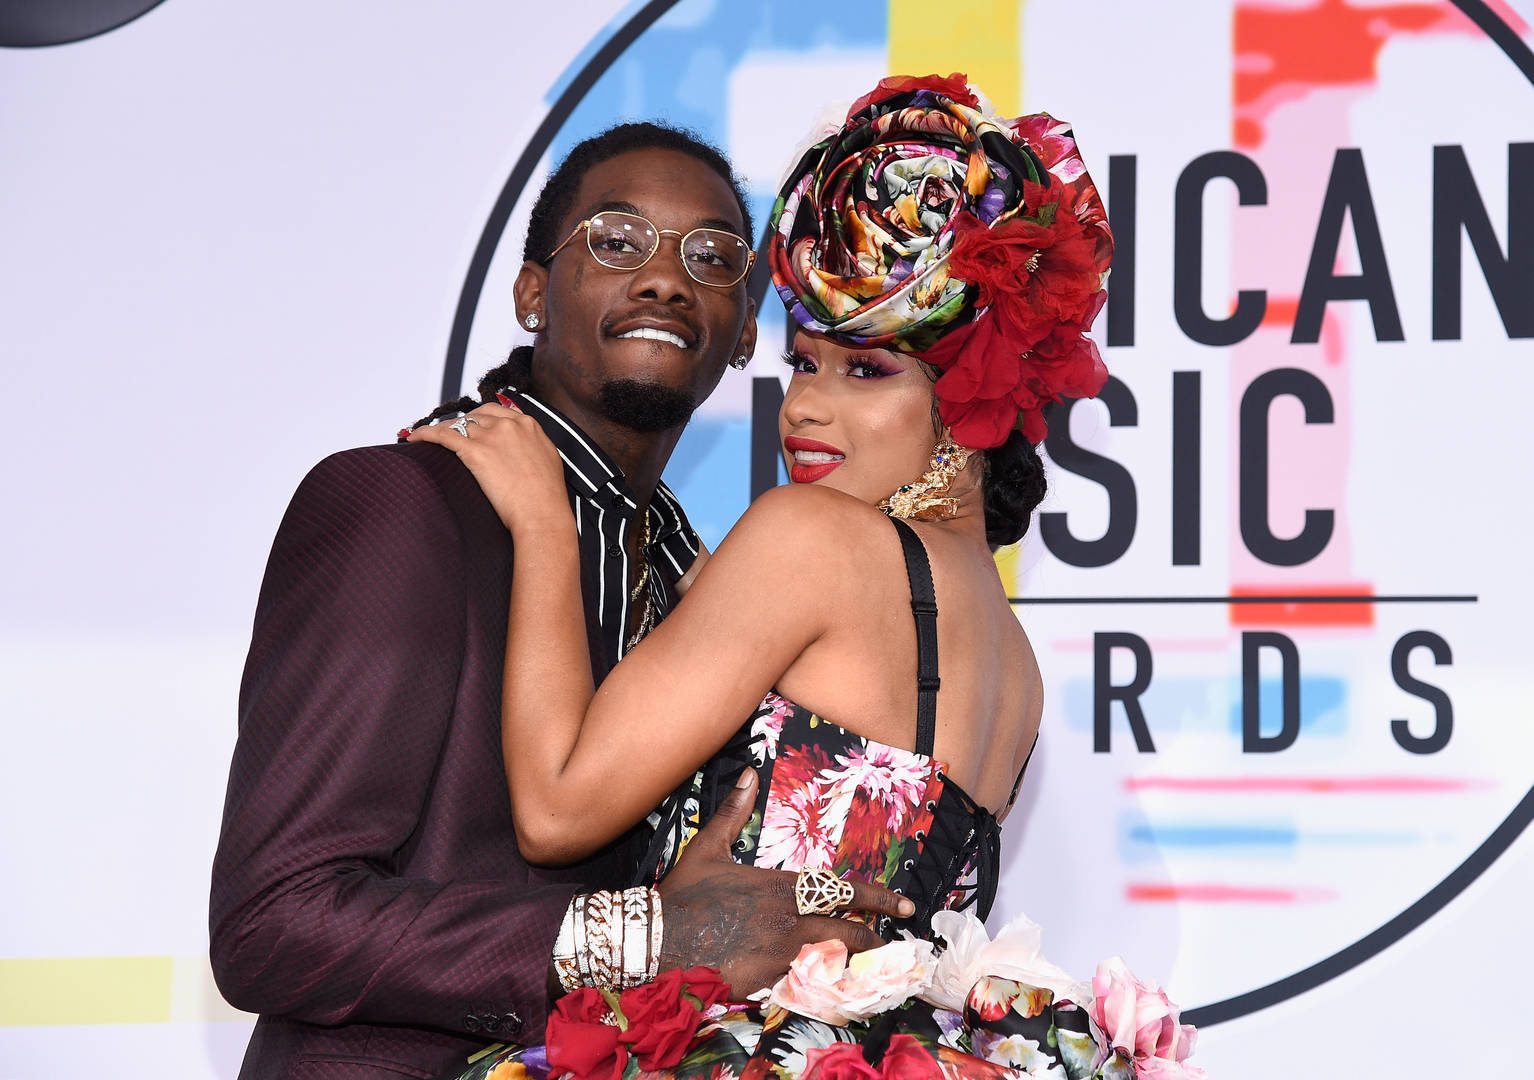 Cardi B Calls Offset S Album A Beautiful Piece In Loving Message